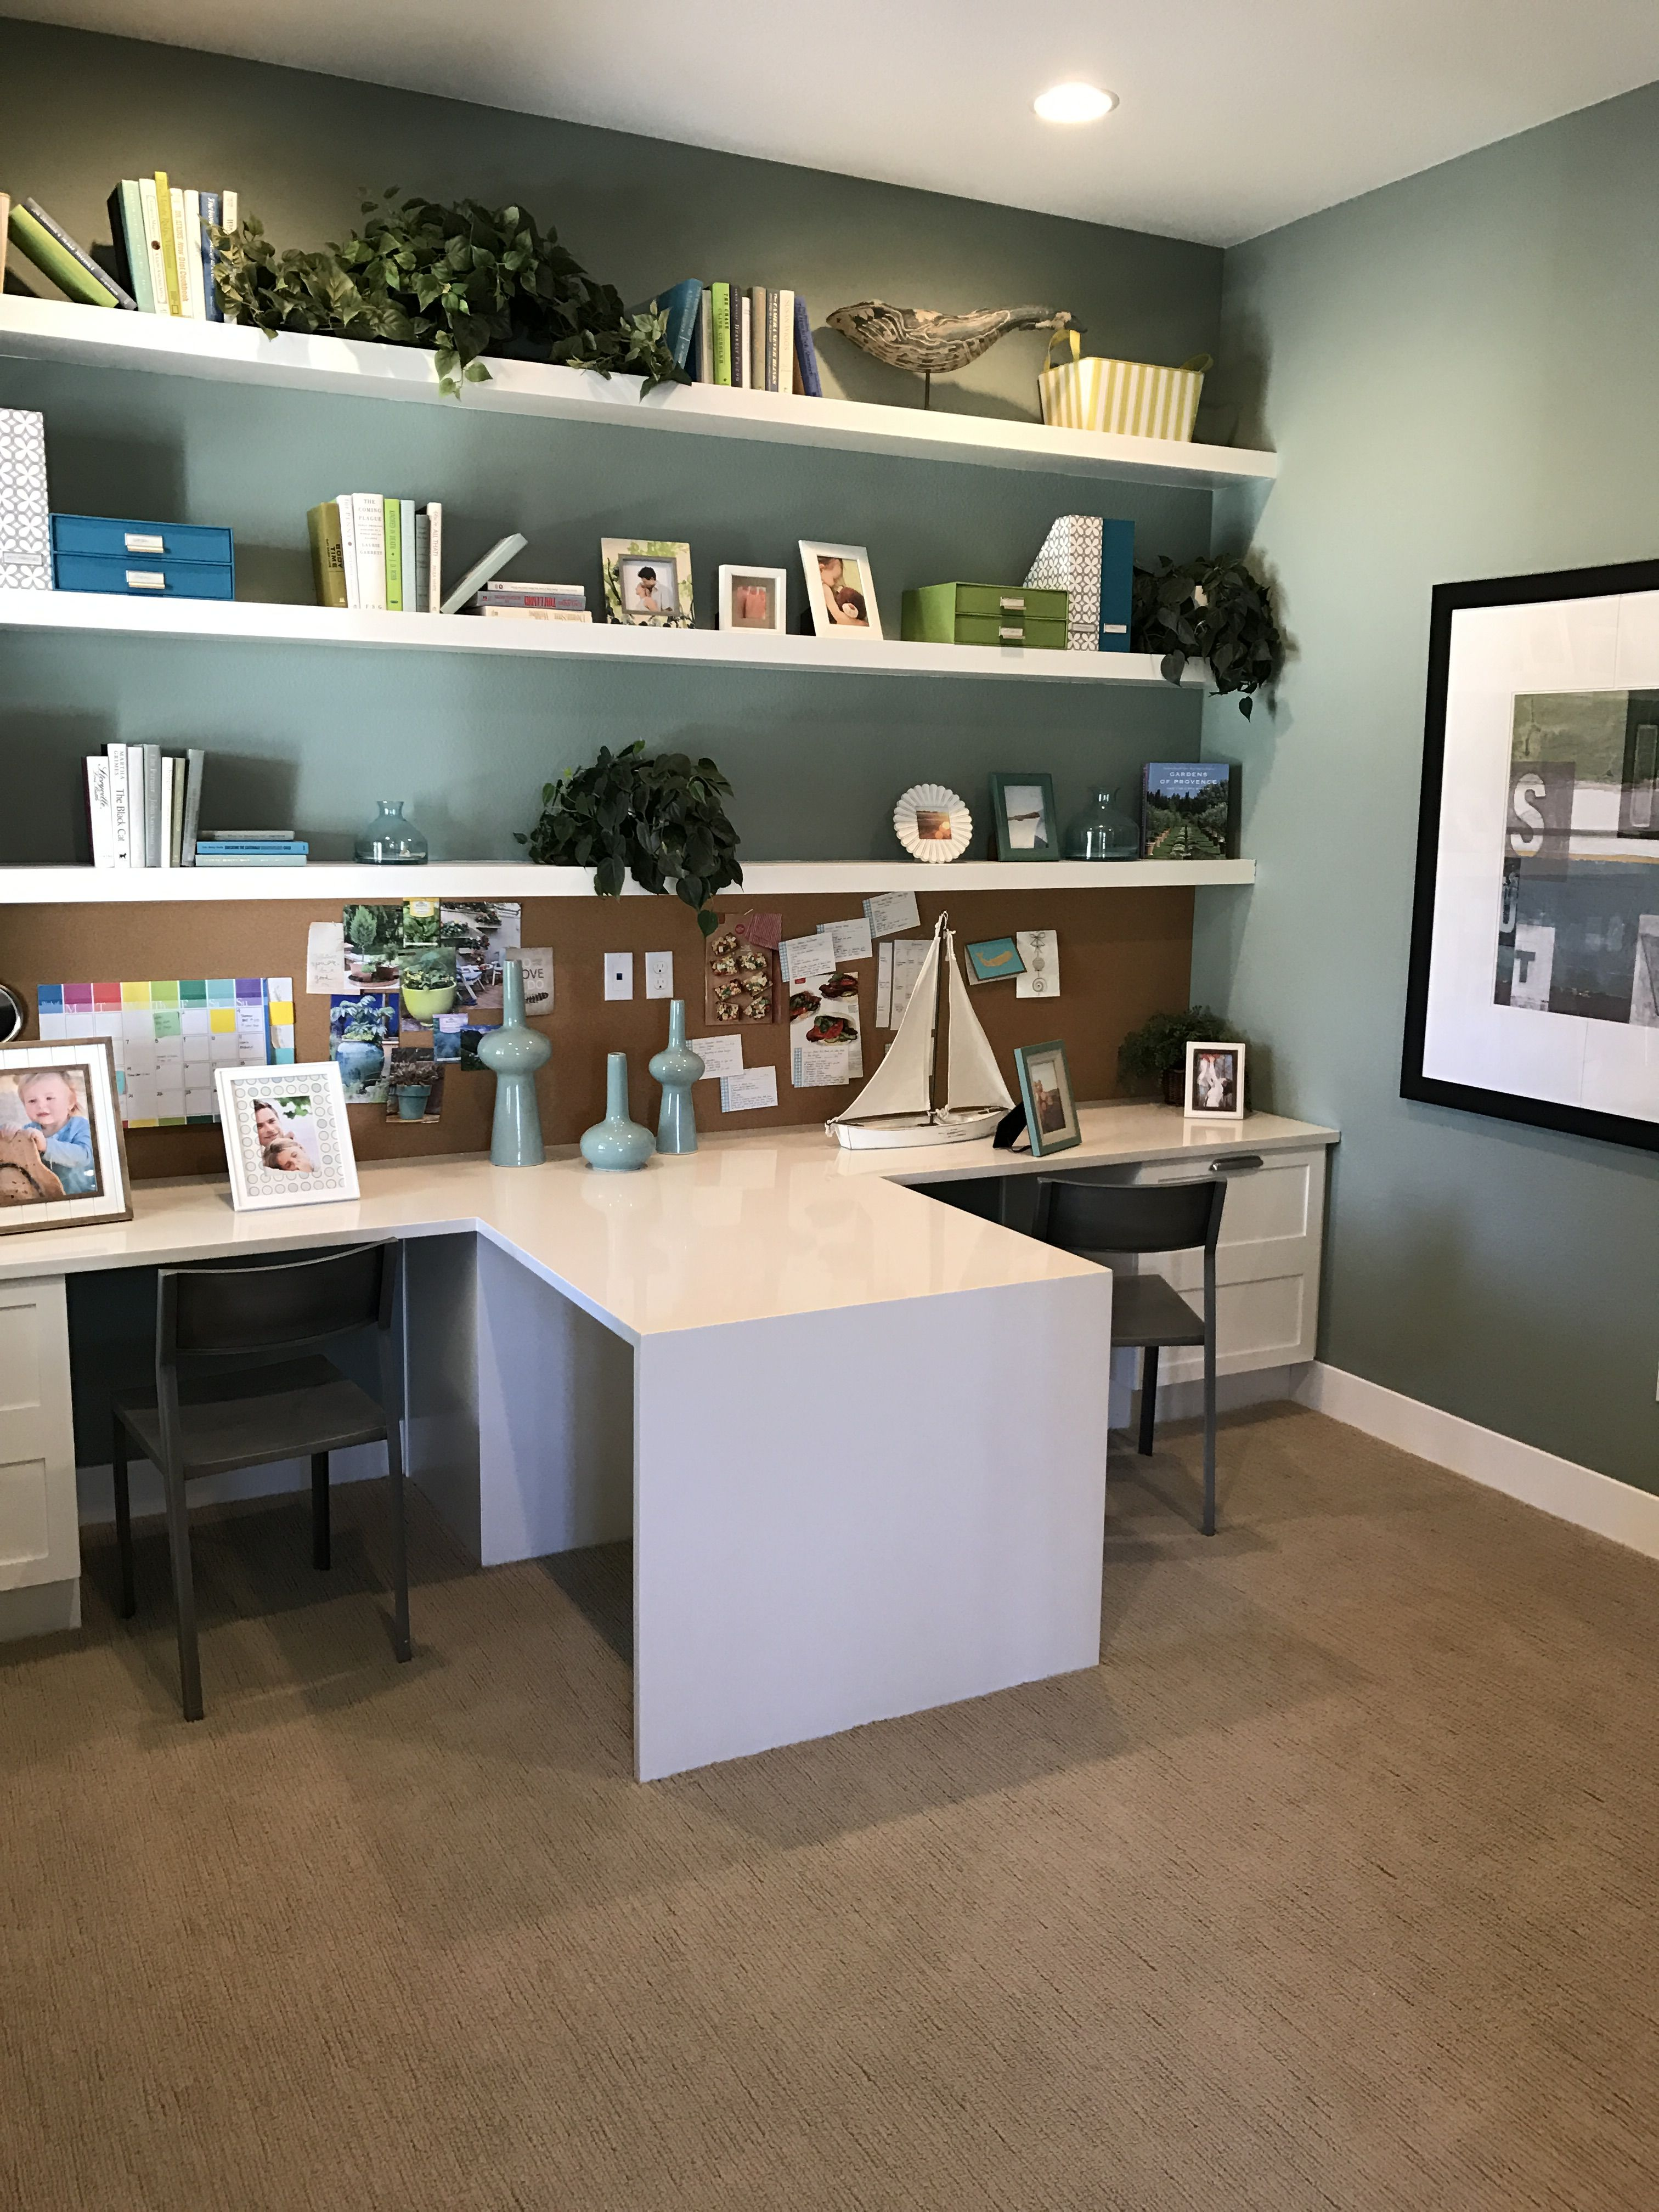 Basement Office Ideas Desk Space For Computer Study Room Ideas In 2019